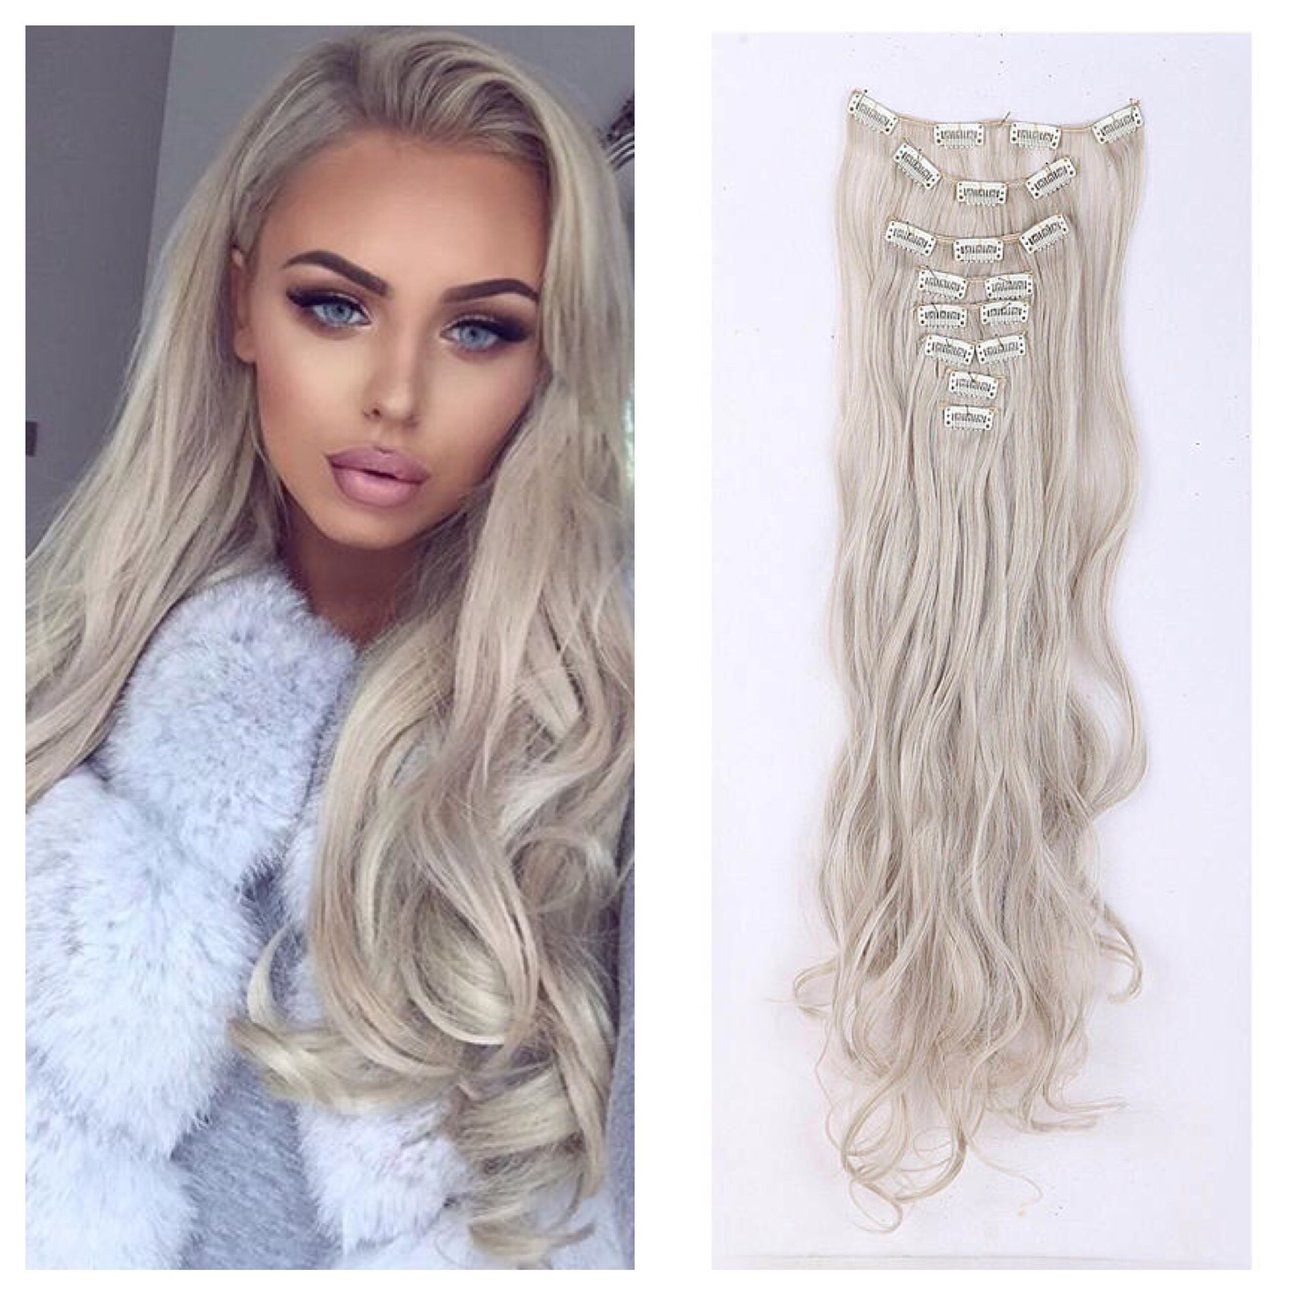 Icy Blonde Clip In Hair Extensions 24 Curly Remy Human Hair 165g